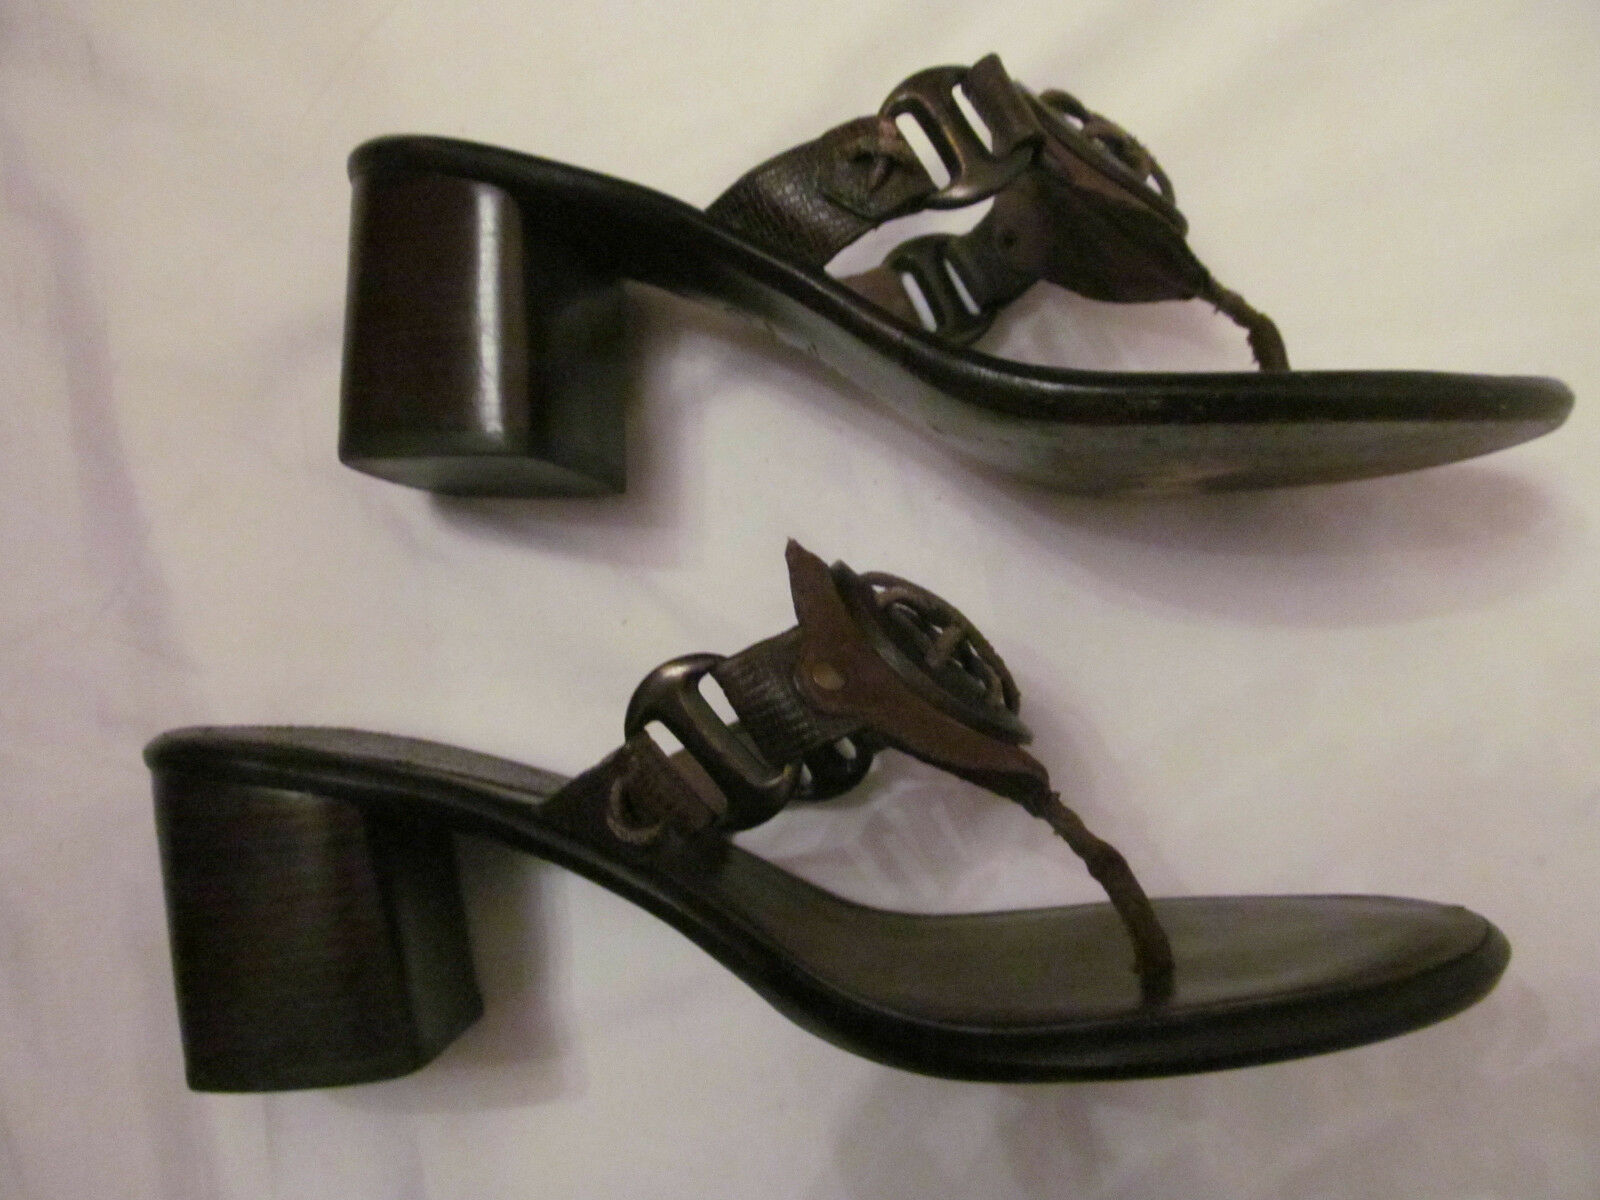 COLE HAAN HAAN HAAN thong leather chunky heel front  sand dollar   sandals shoes 9 b09093